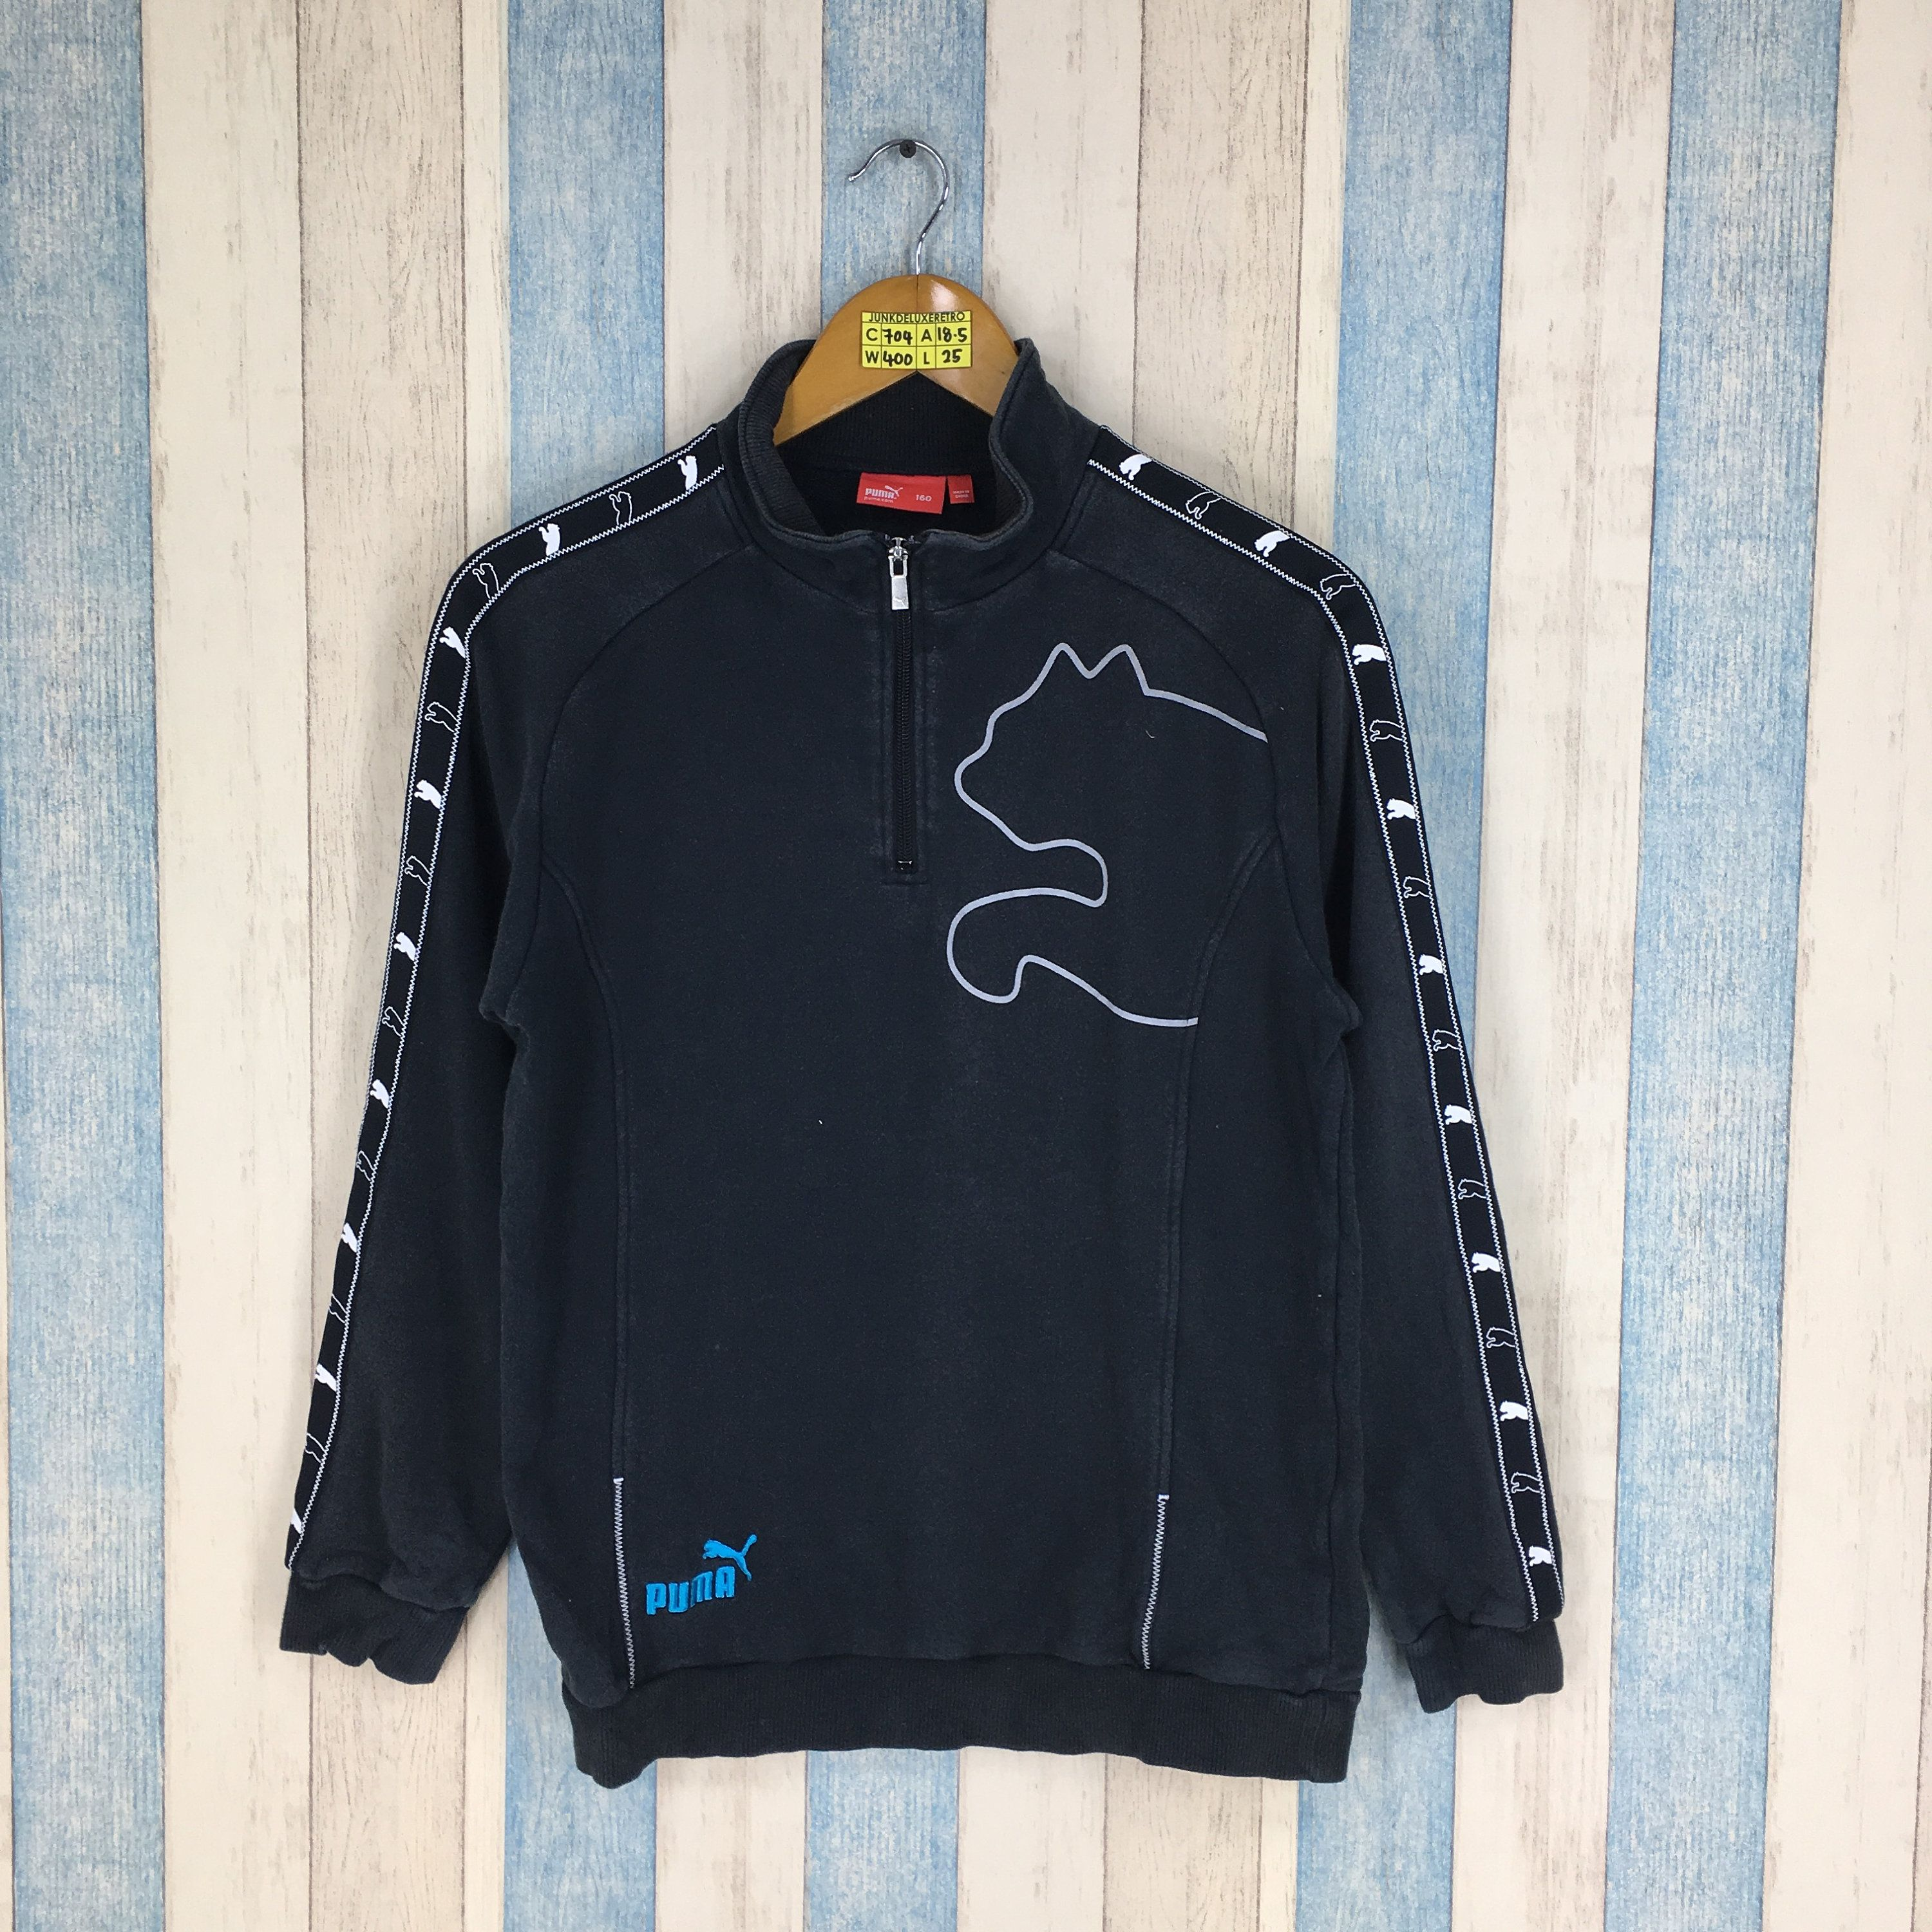 41f3903bb41ac PUMA Sweater Small Black Vintage 1990's Cougars Puma Spell Out Big ...